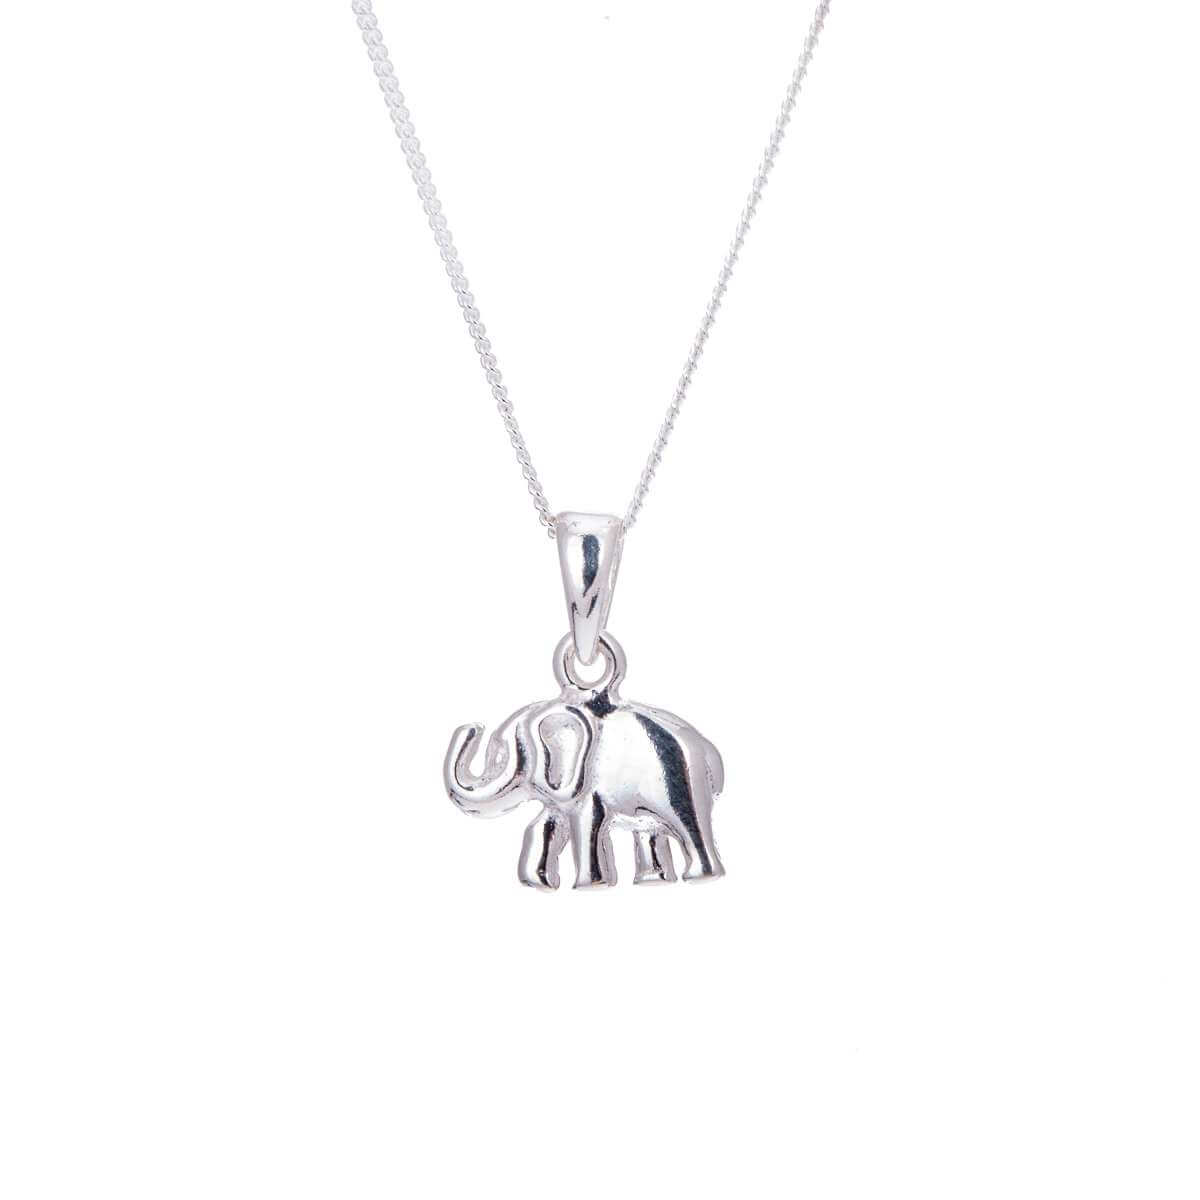 Sterling Silver Elephant Necklace - 14 - 32 Inches